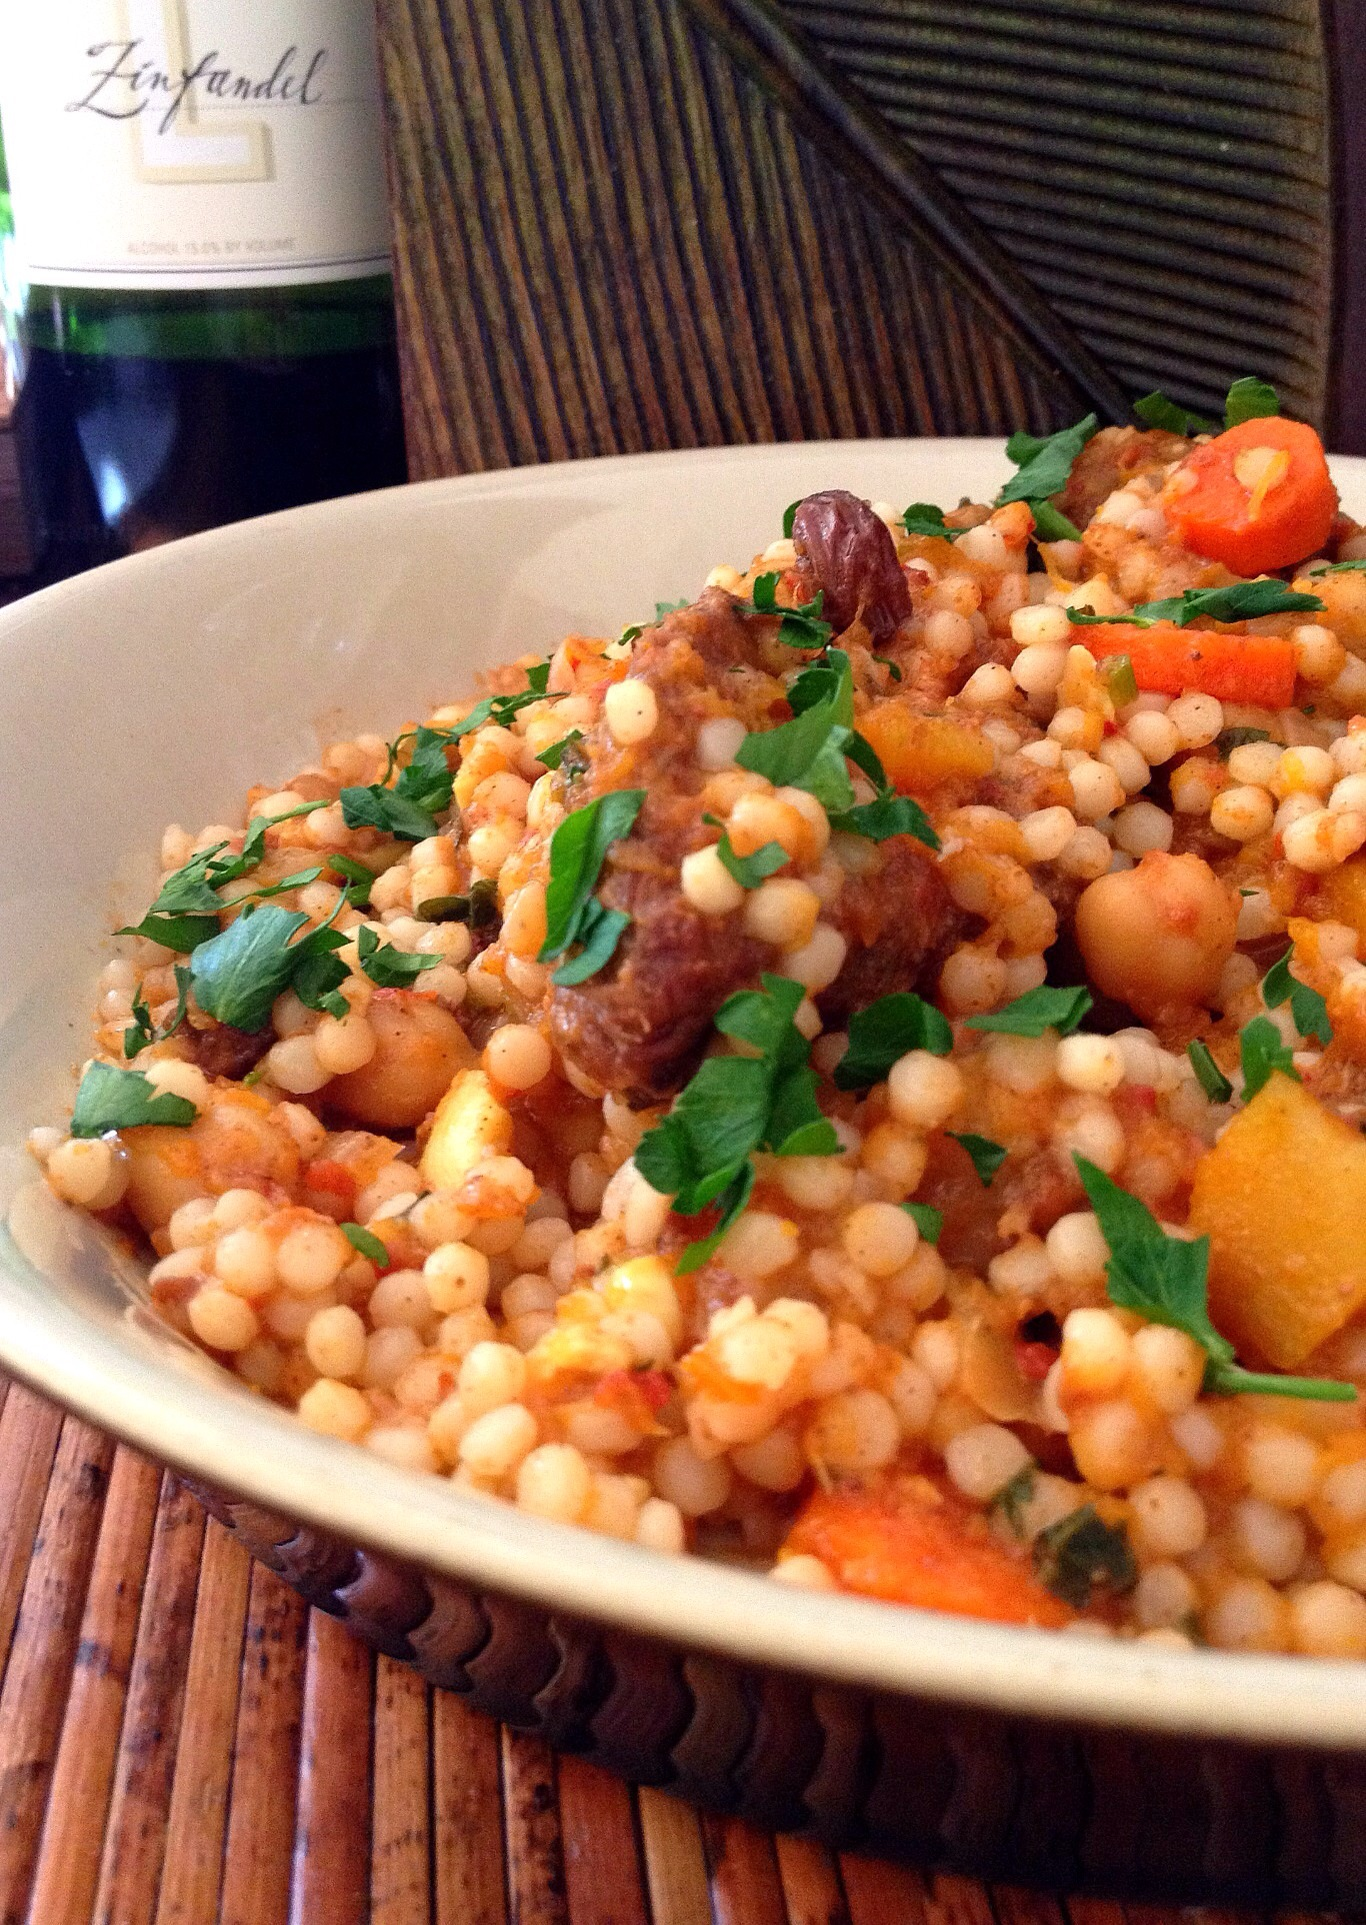 ... Make this Slow Cooker Moroccan Tagine with Chickpeas & Pearl Couscous